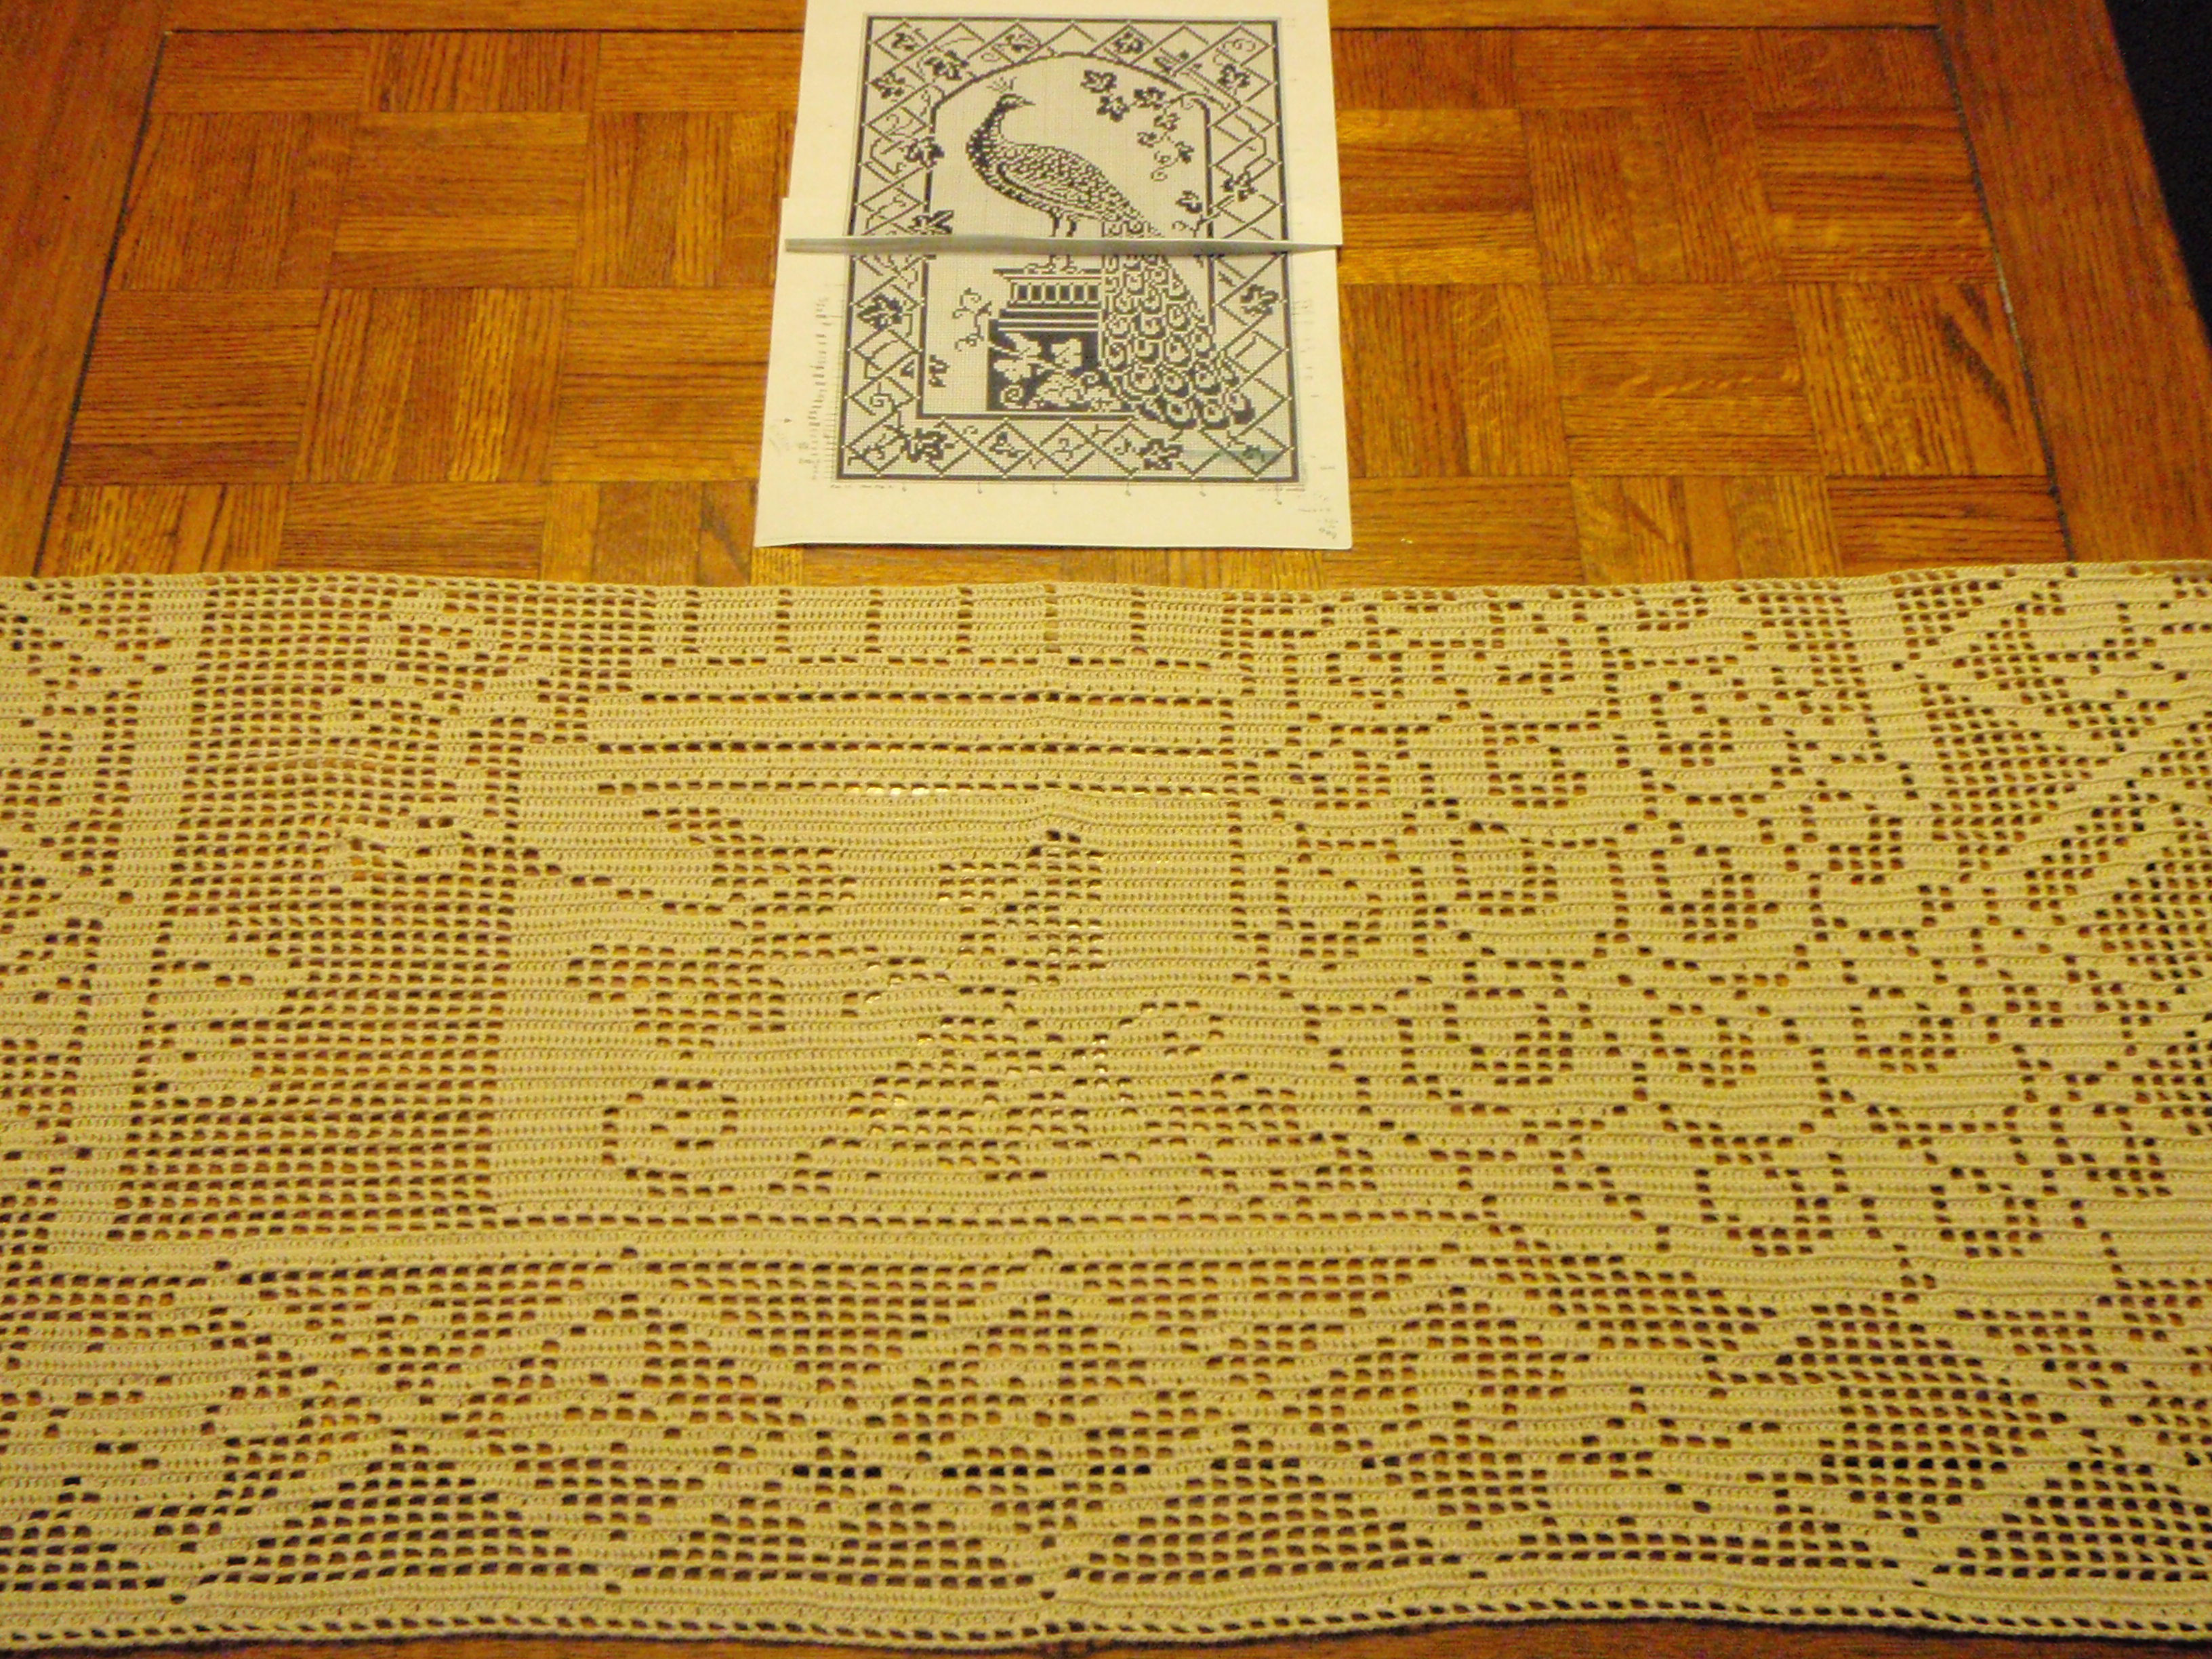 Filet Crochet Awesome How to Filet Crochet Of Filet Crochet Awesome Horse Filet Crochet Pattern